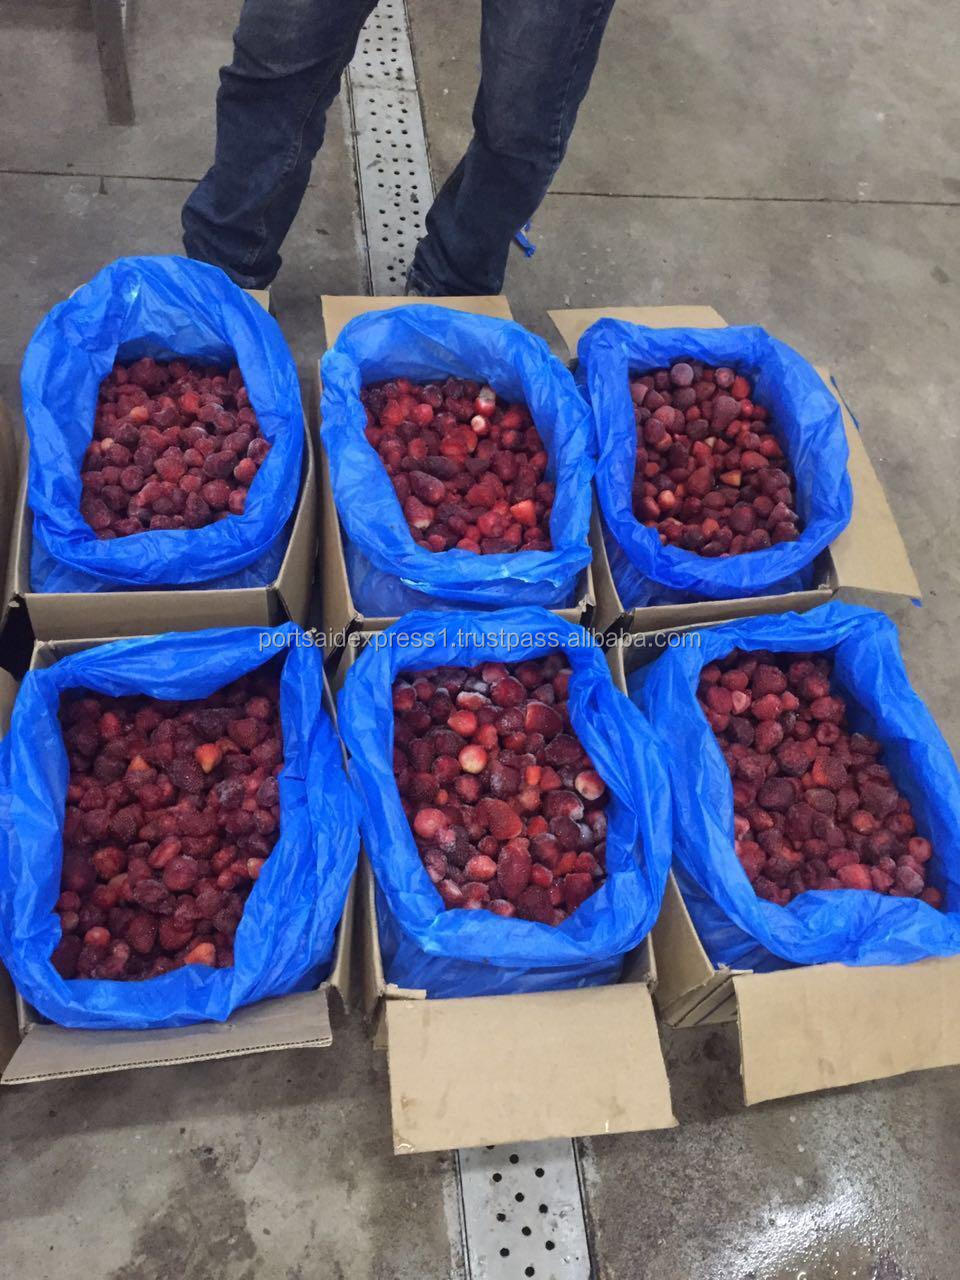 Price For Frozen Strawberry,Strawberry Frozen Ready To Export To Uae - Buy  Frozen Strawberry,Strawberry Frozen,Price For Frozen Strawberry Product on